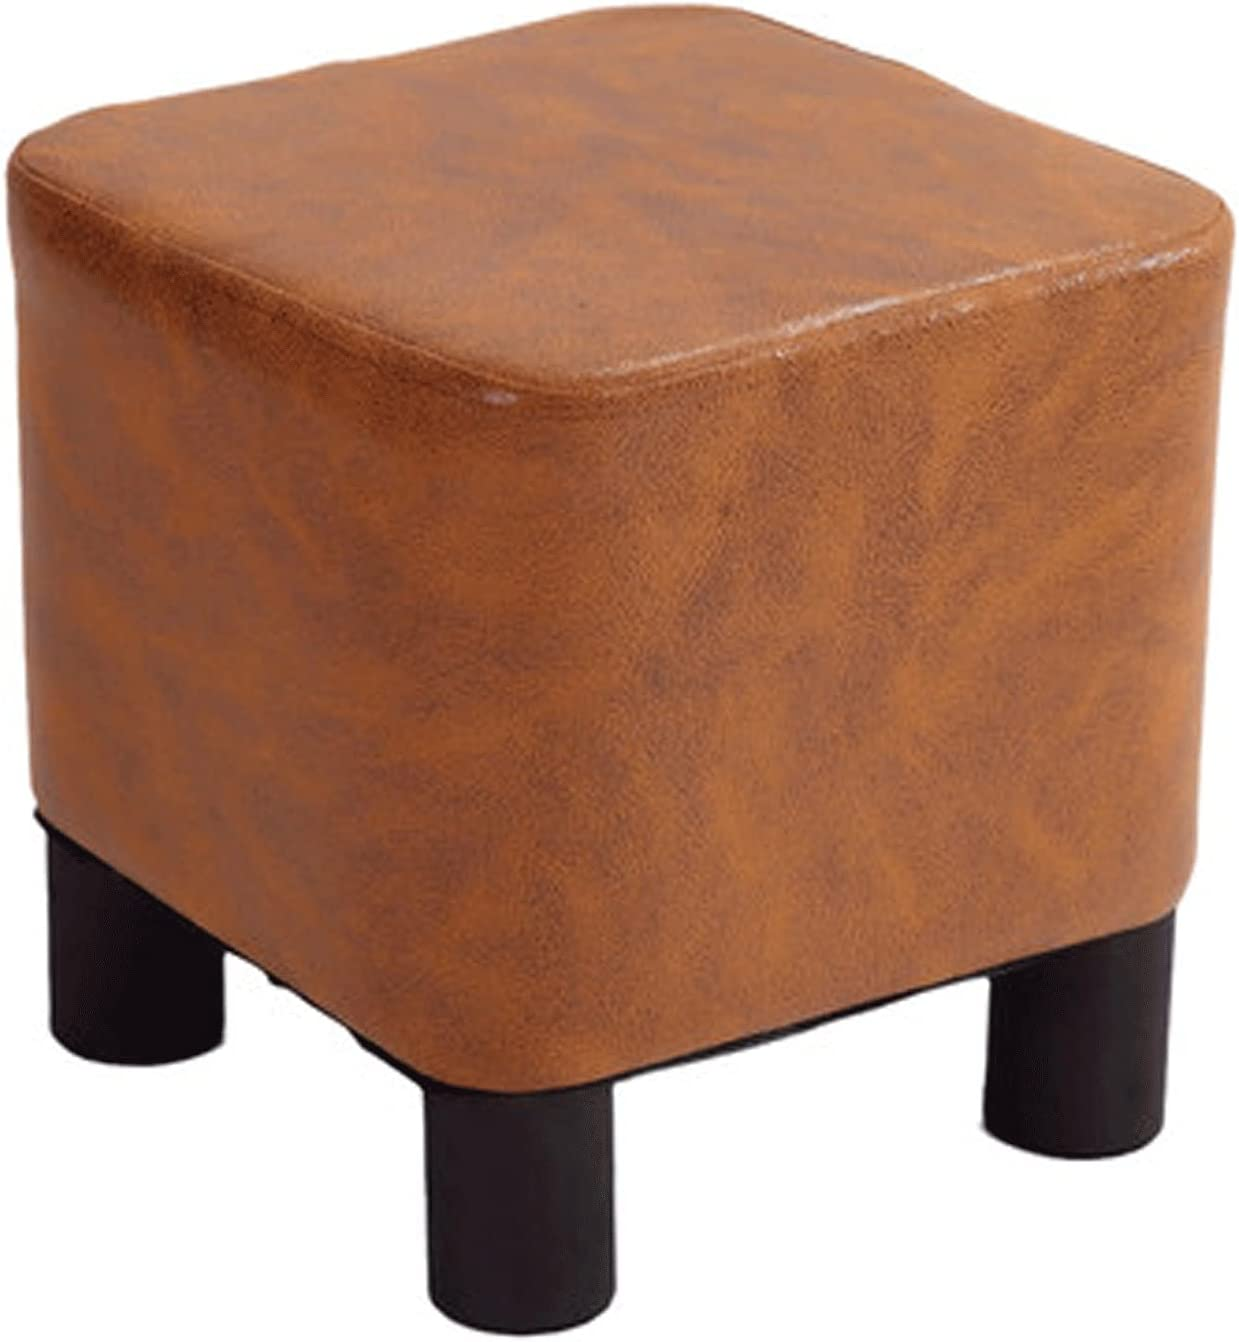 AITAOZI Free Max 82% OFF shipping Solid Wood Shoe Changing Fabric St Stool Household Small